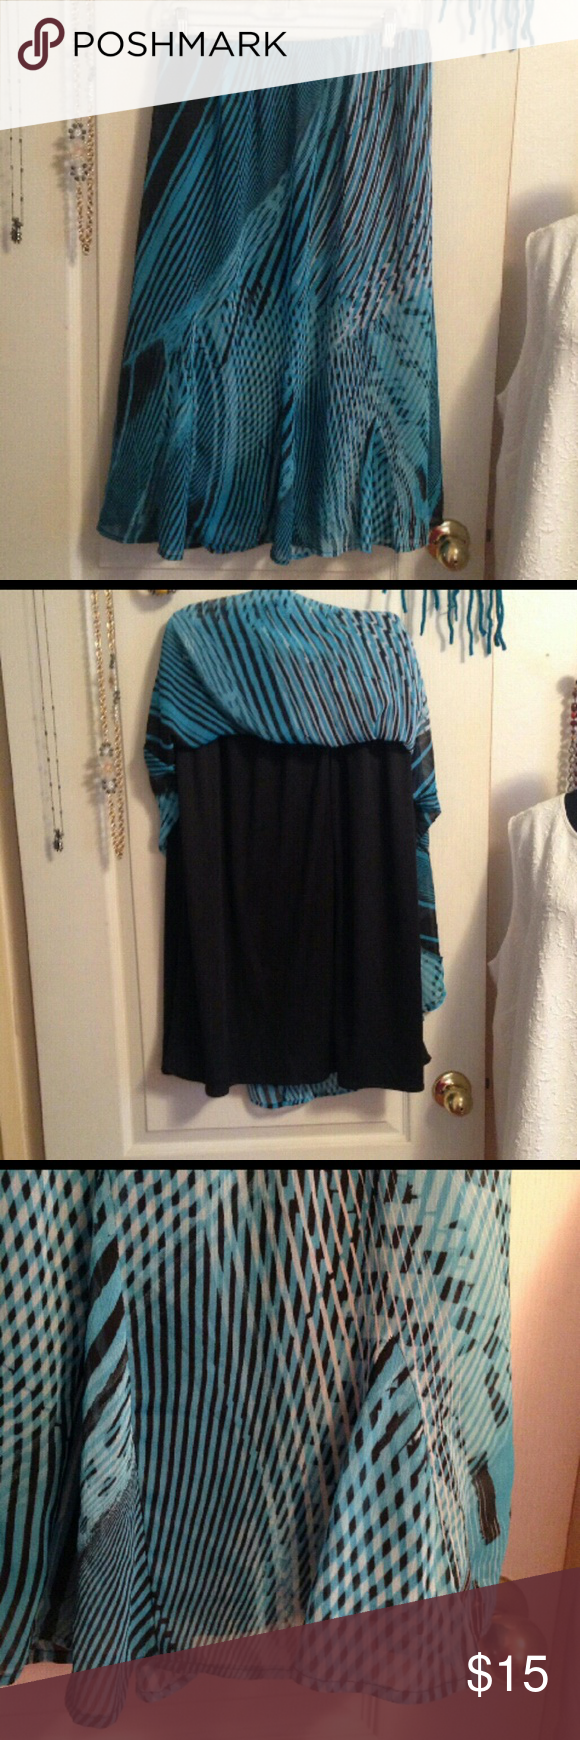 "AVENUE Black & Turquoise Sheer Skirt AVENUE Black & Turquoise Sheer Skirt 29"" long Size 22/24 Avenue Skirts Midi"